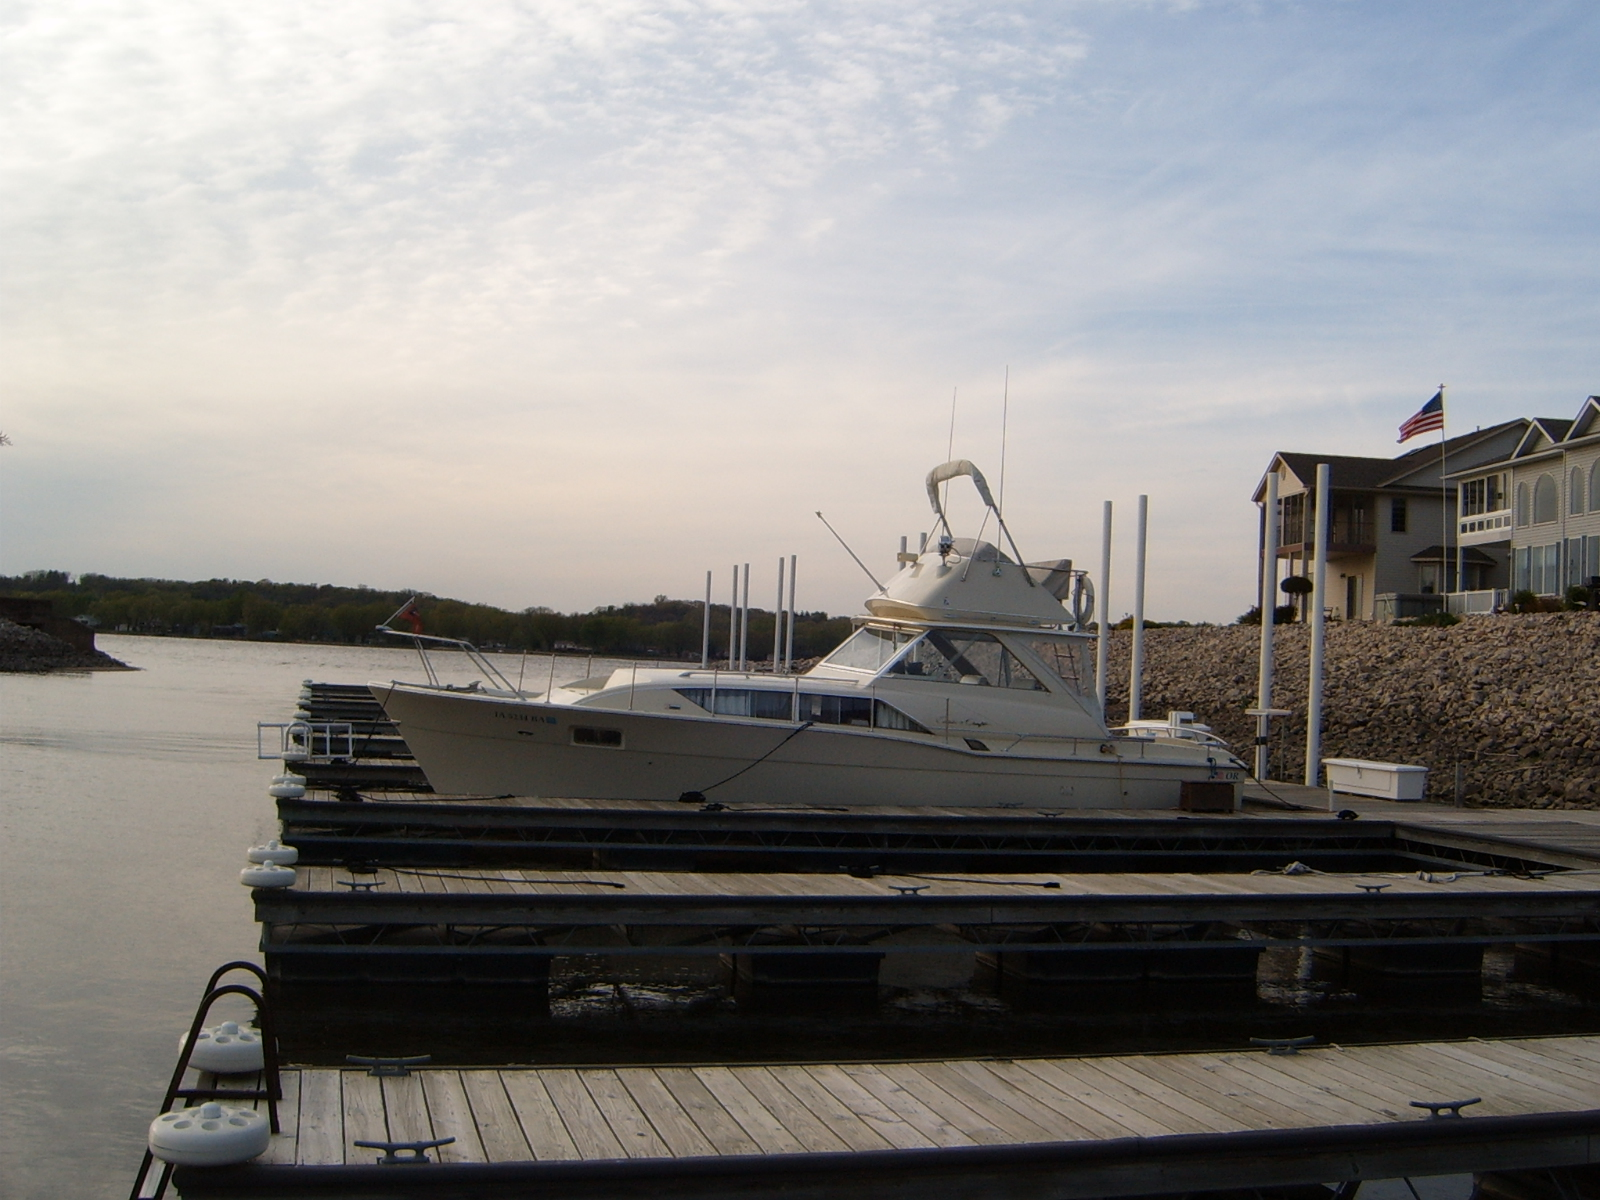 Dockside classic 1968 chris craft 35 commander dream boat for Classic chris craft boats